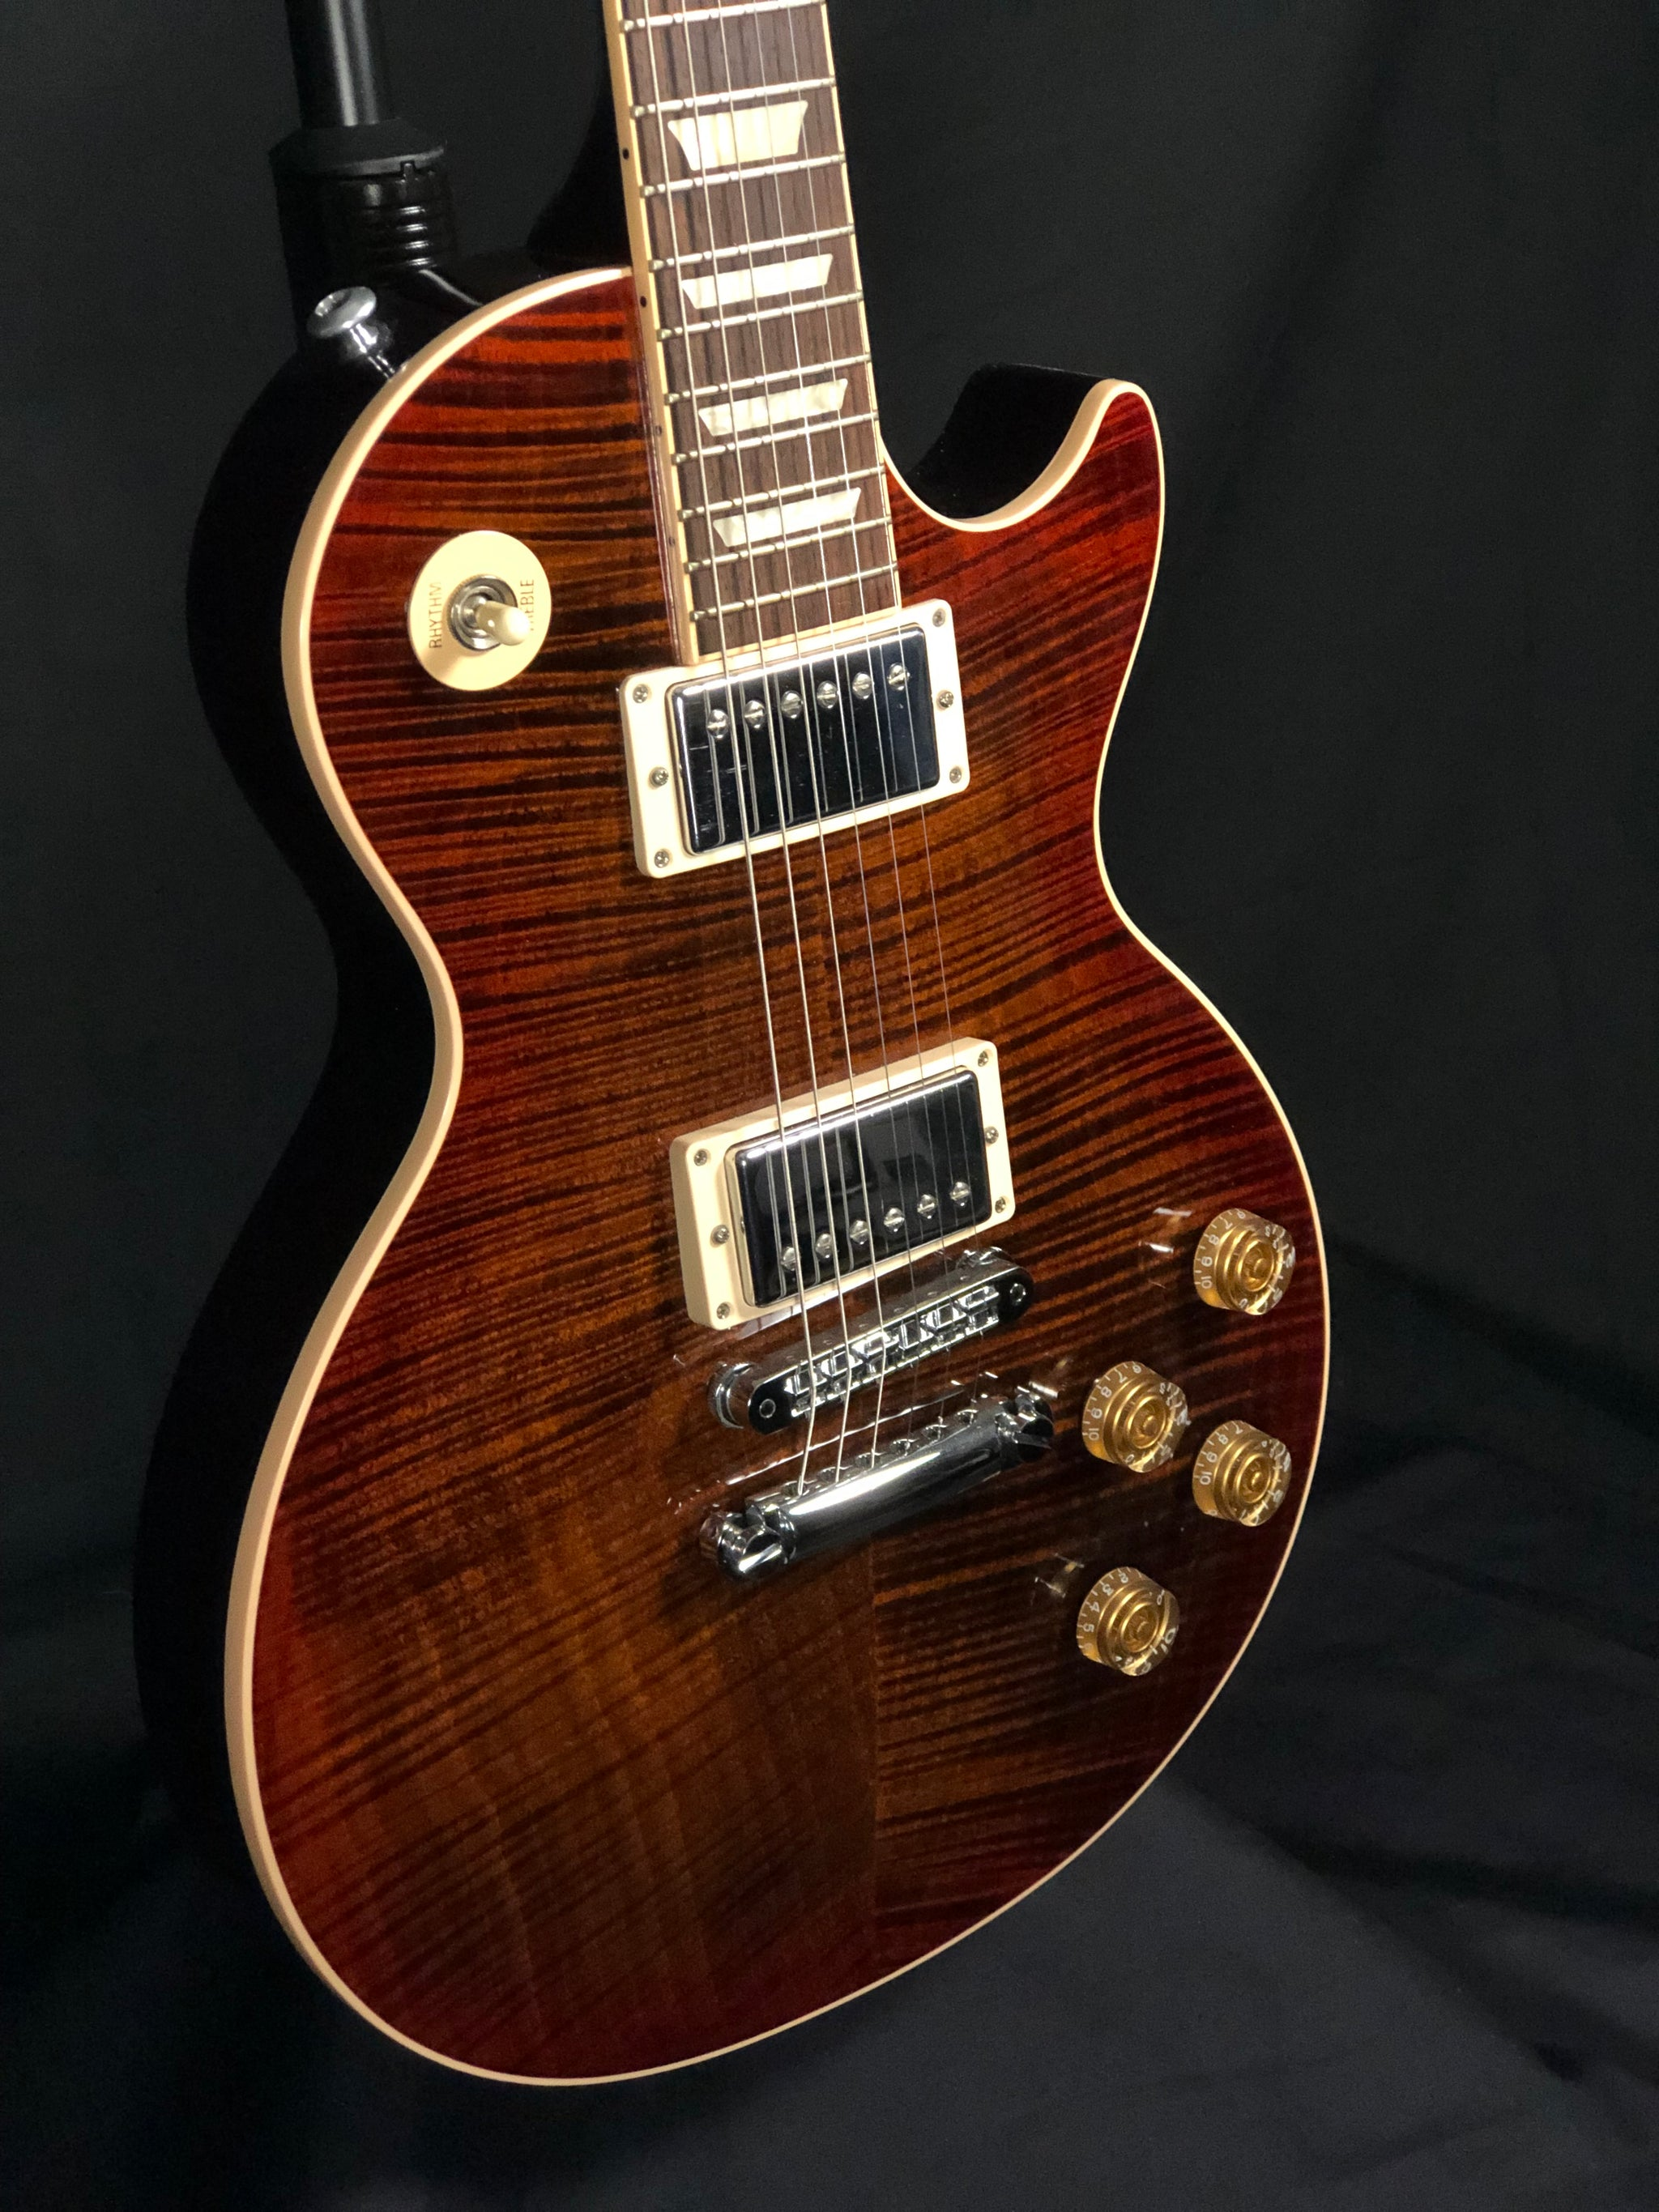 2014 Gibson Les Paul Book-Matched Flame Top!